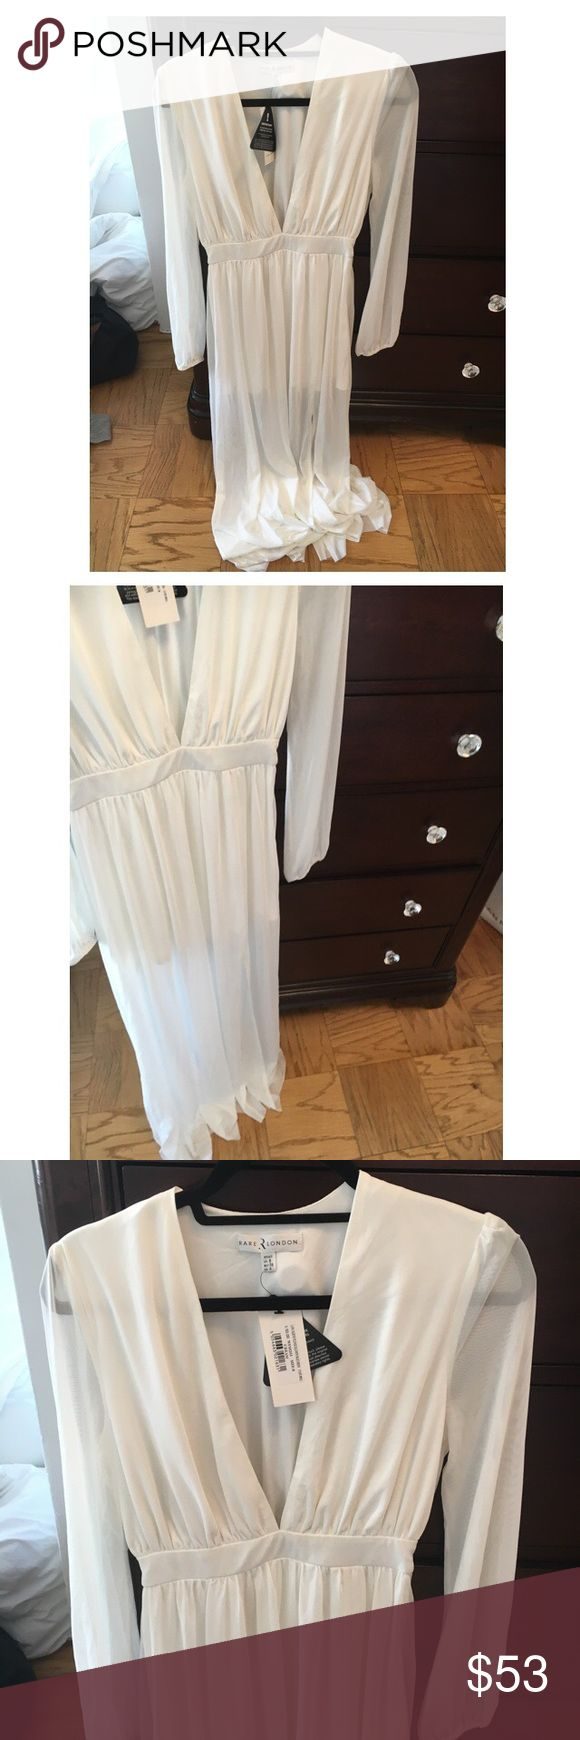 Rare London Cream Maxi Dress - [NWT] [NWT] Cream maxi dress. Material feels like a netting. Skirt lining but the rest of the leg is see through. Very sexy yet classy. Size small / UK 8. Feel free to ask any questions! Rare London Dresses Maxi